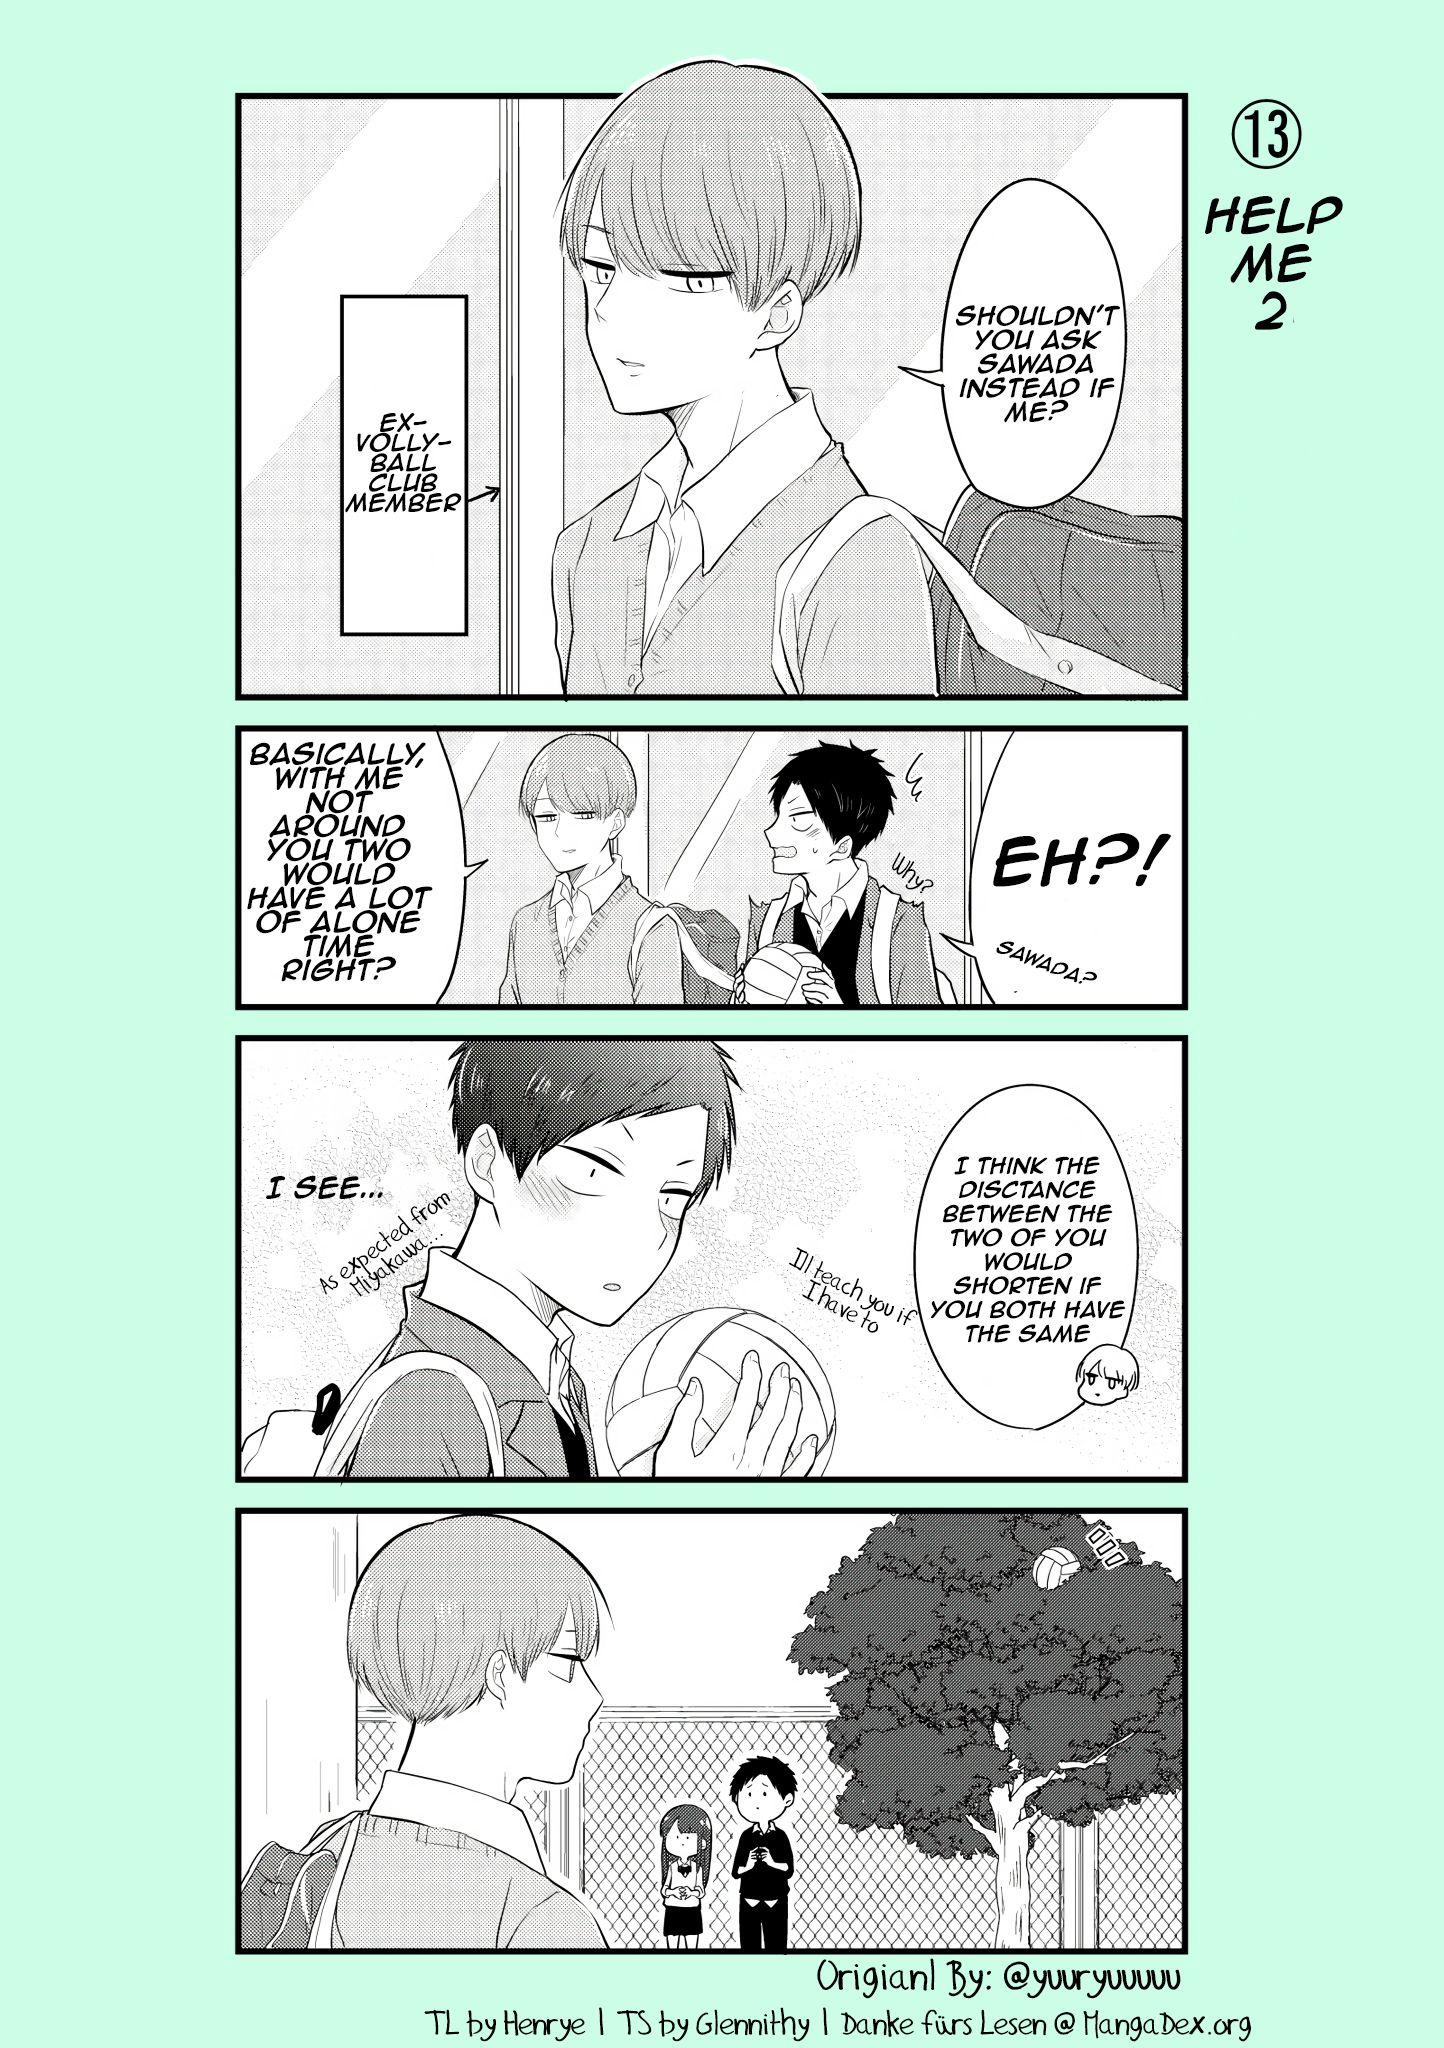 Ichimura-kun Wants to be Relied On - chapter 13 - #1